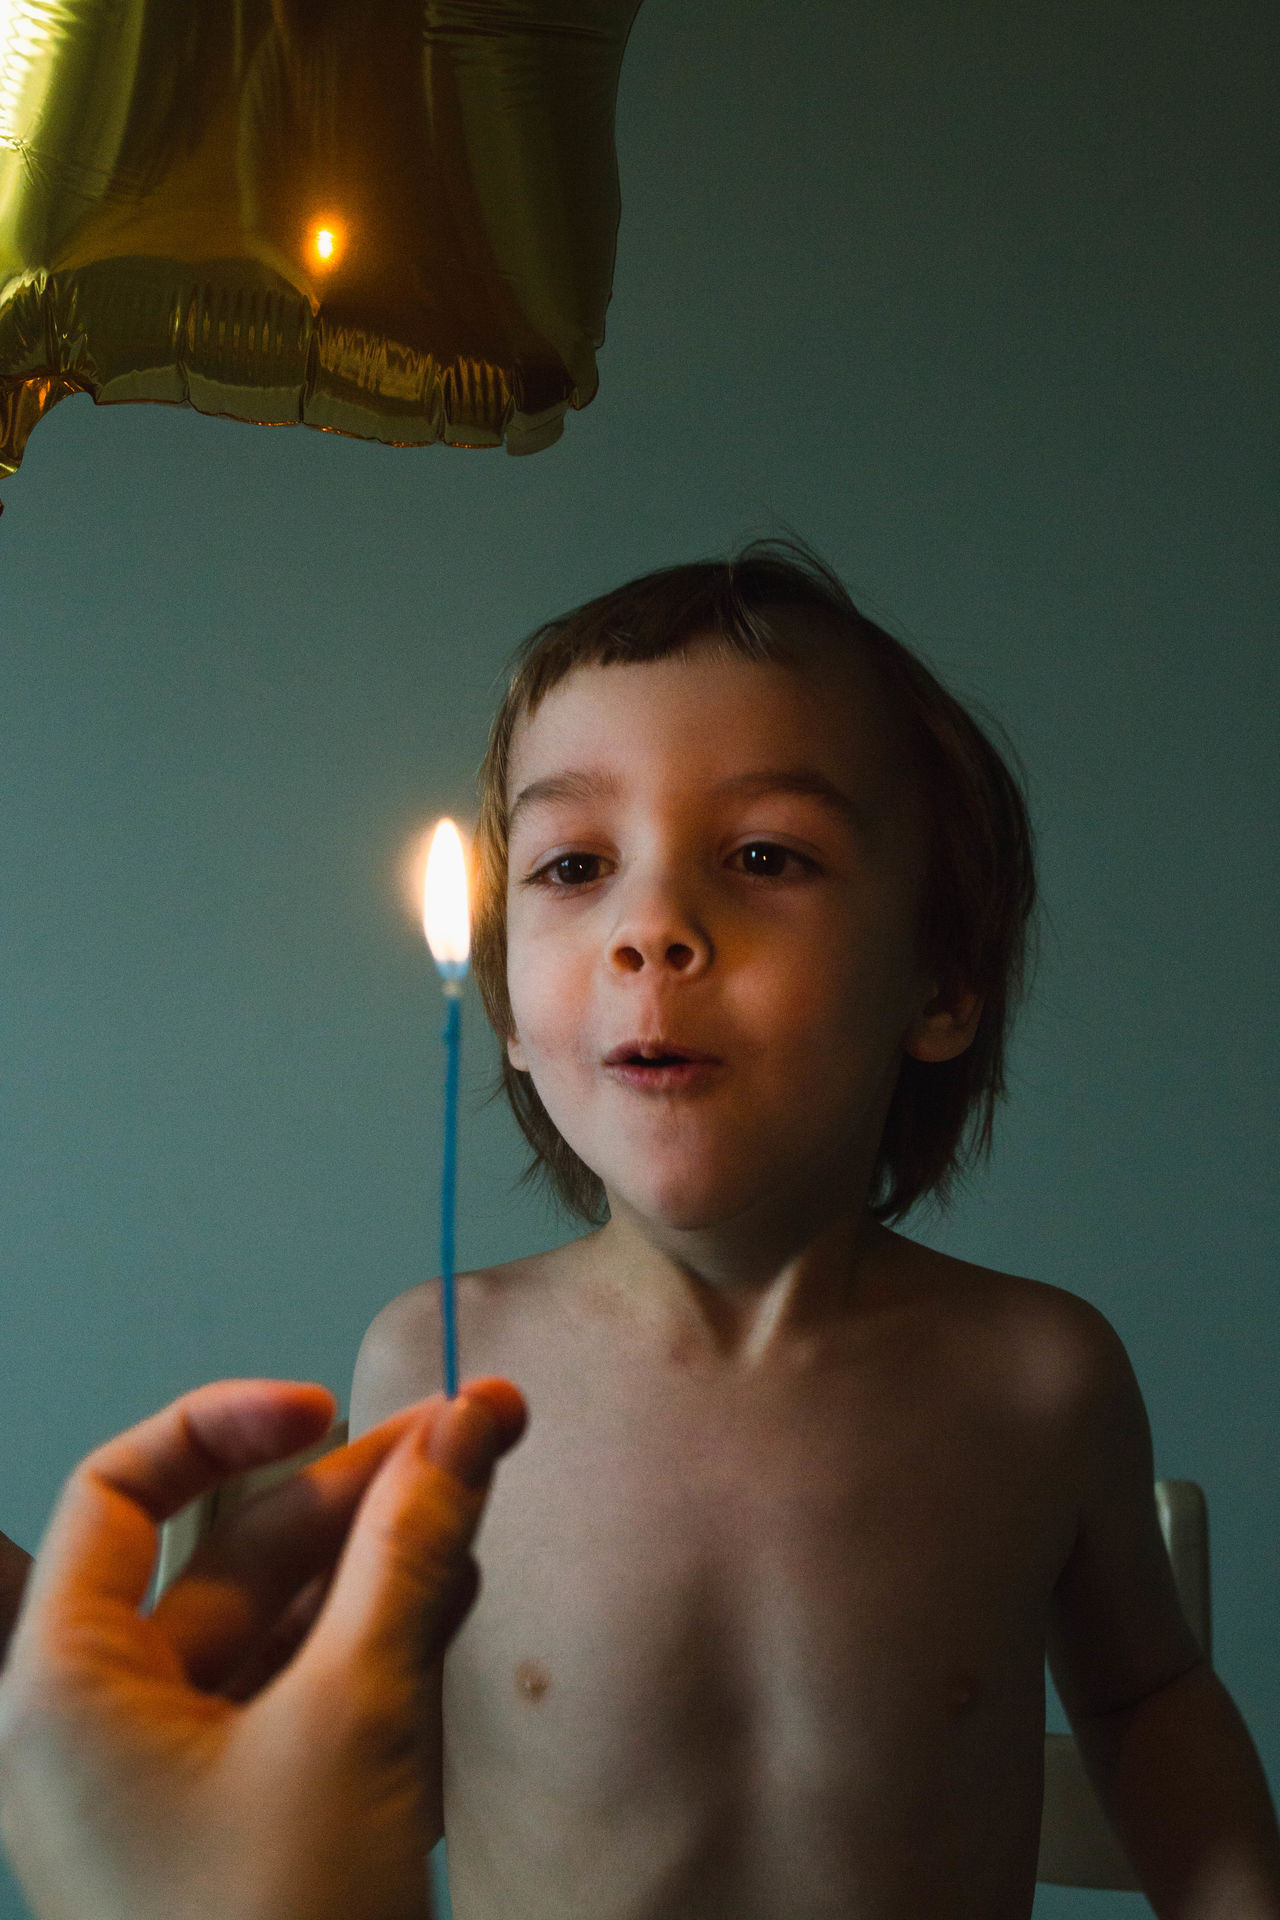 Birthday Cake Birthday Candles Burning Candle Child Childhood Close-up Day Flame Headshot Illuminated Indoors  Lifestyles Looking At Camera One Person People Portrait Real People Shirtless